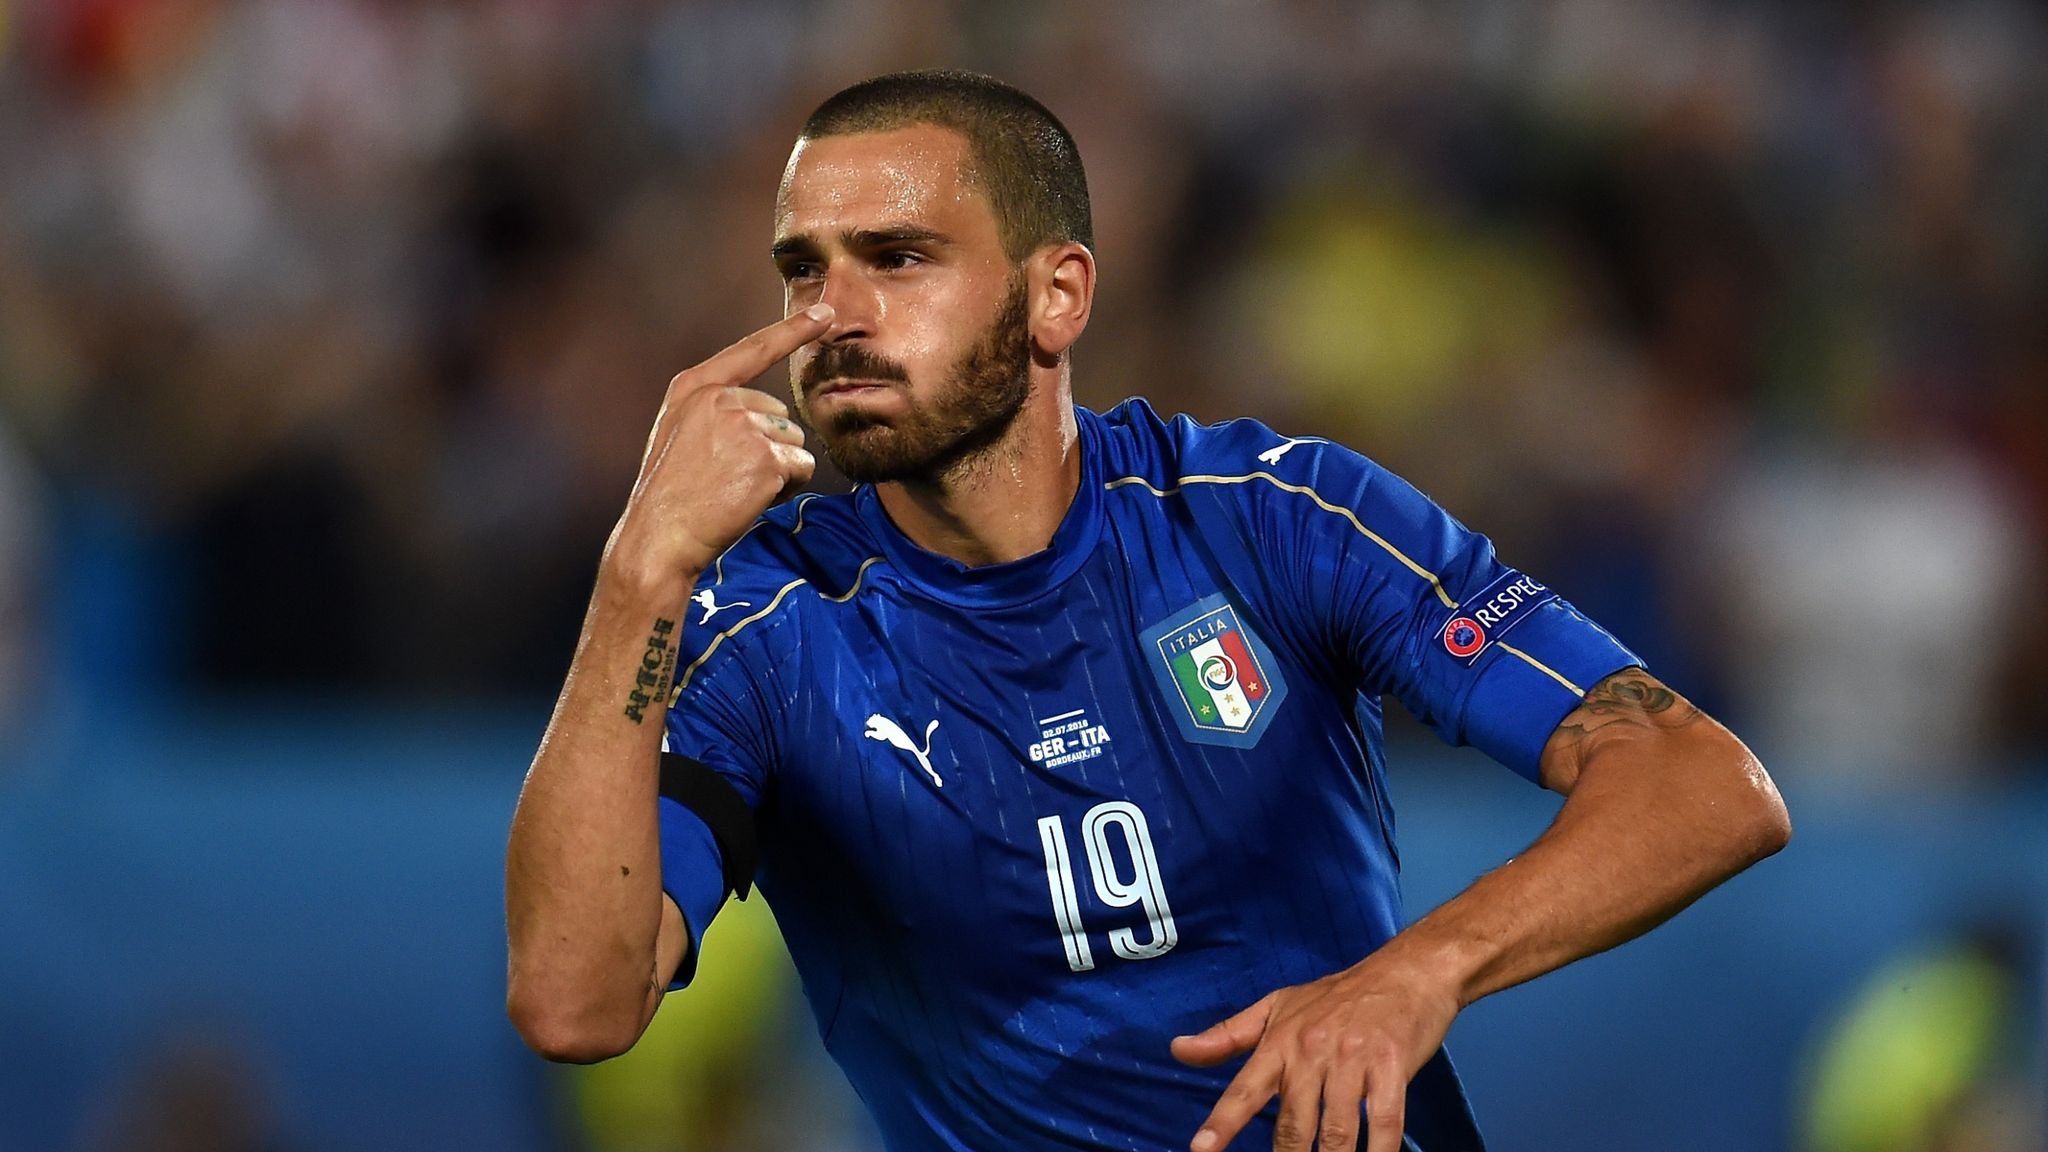 Who are the best 5 players in the Italian Team - Euro 2020: Bonnucci